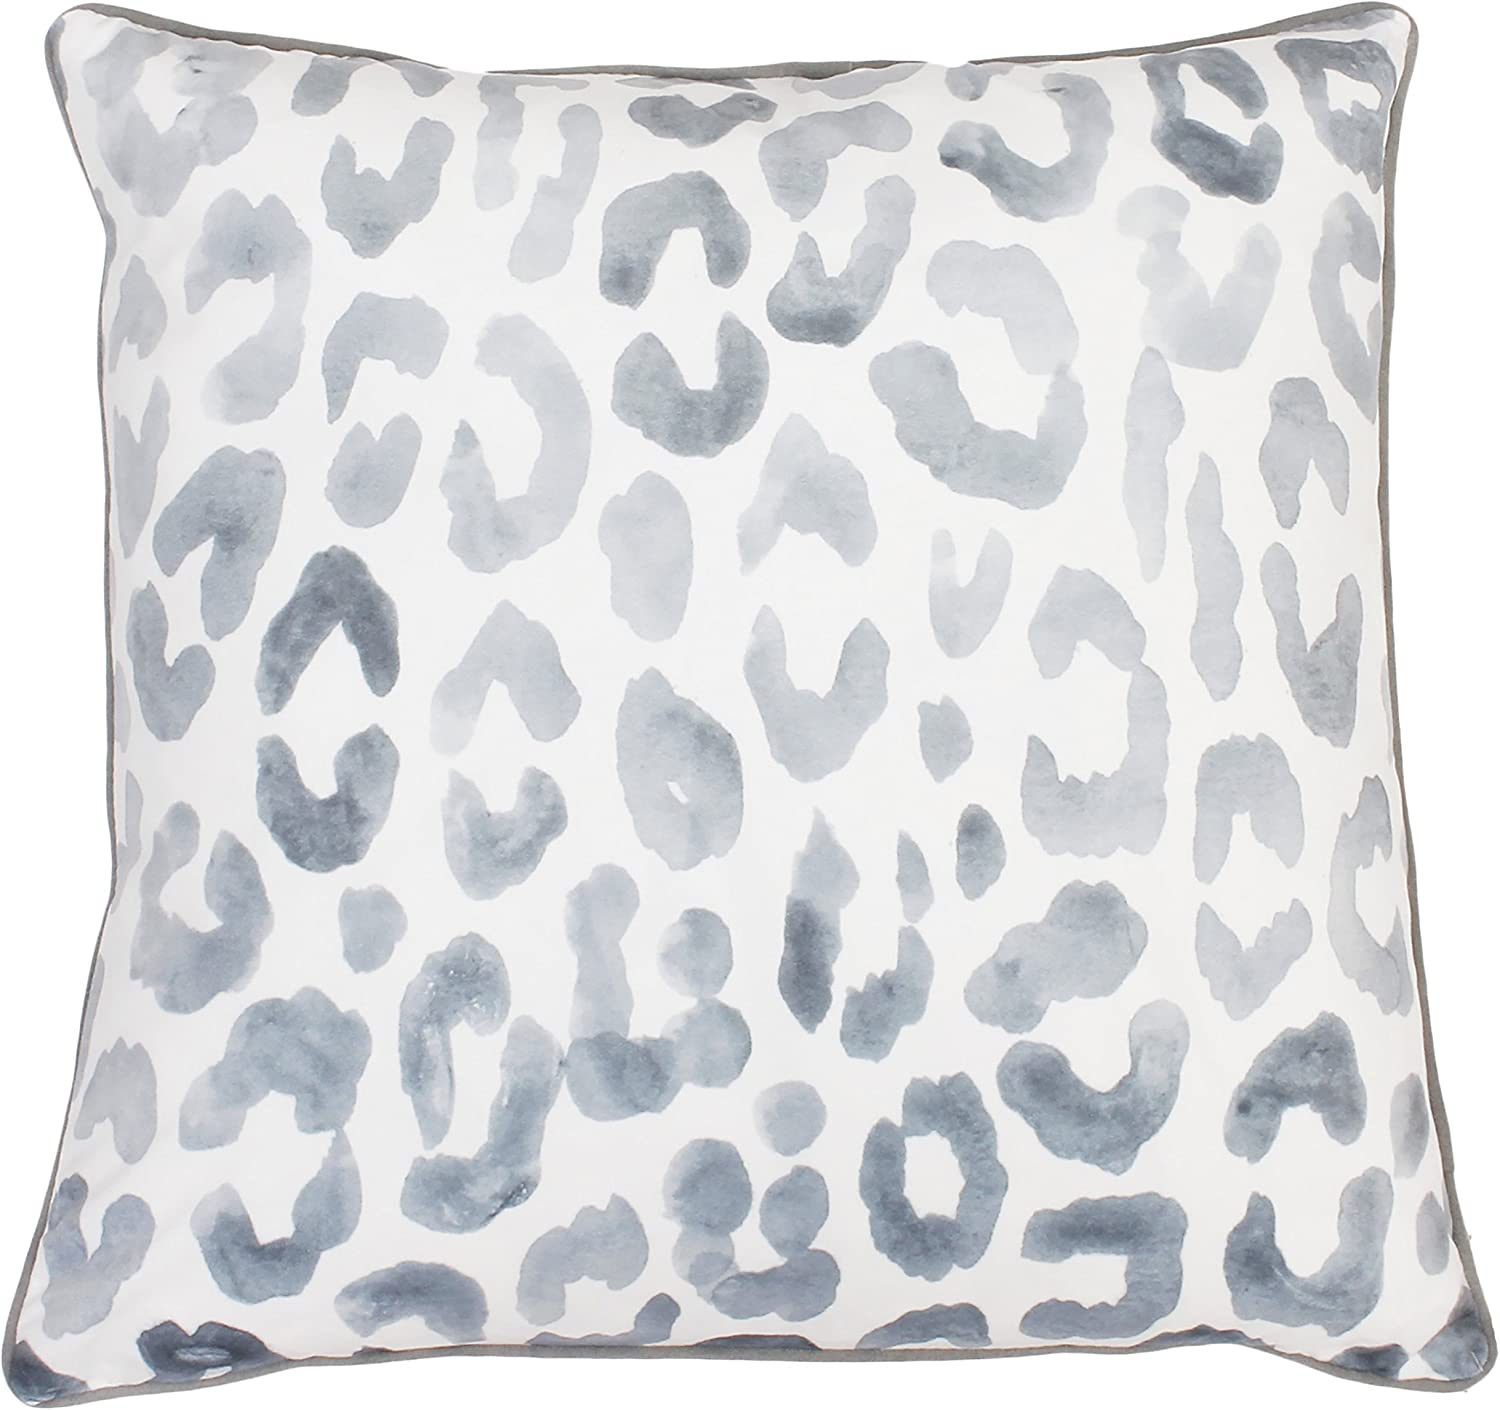 Amazon Com Thro By Marlo Lorenz 20x20 Miron Cheetah Velvet Throw Pillow 20 X 20 Gray Home Kitchen